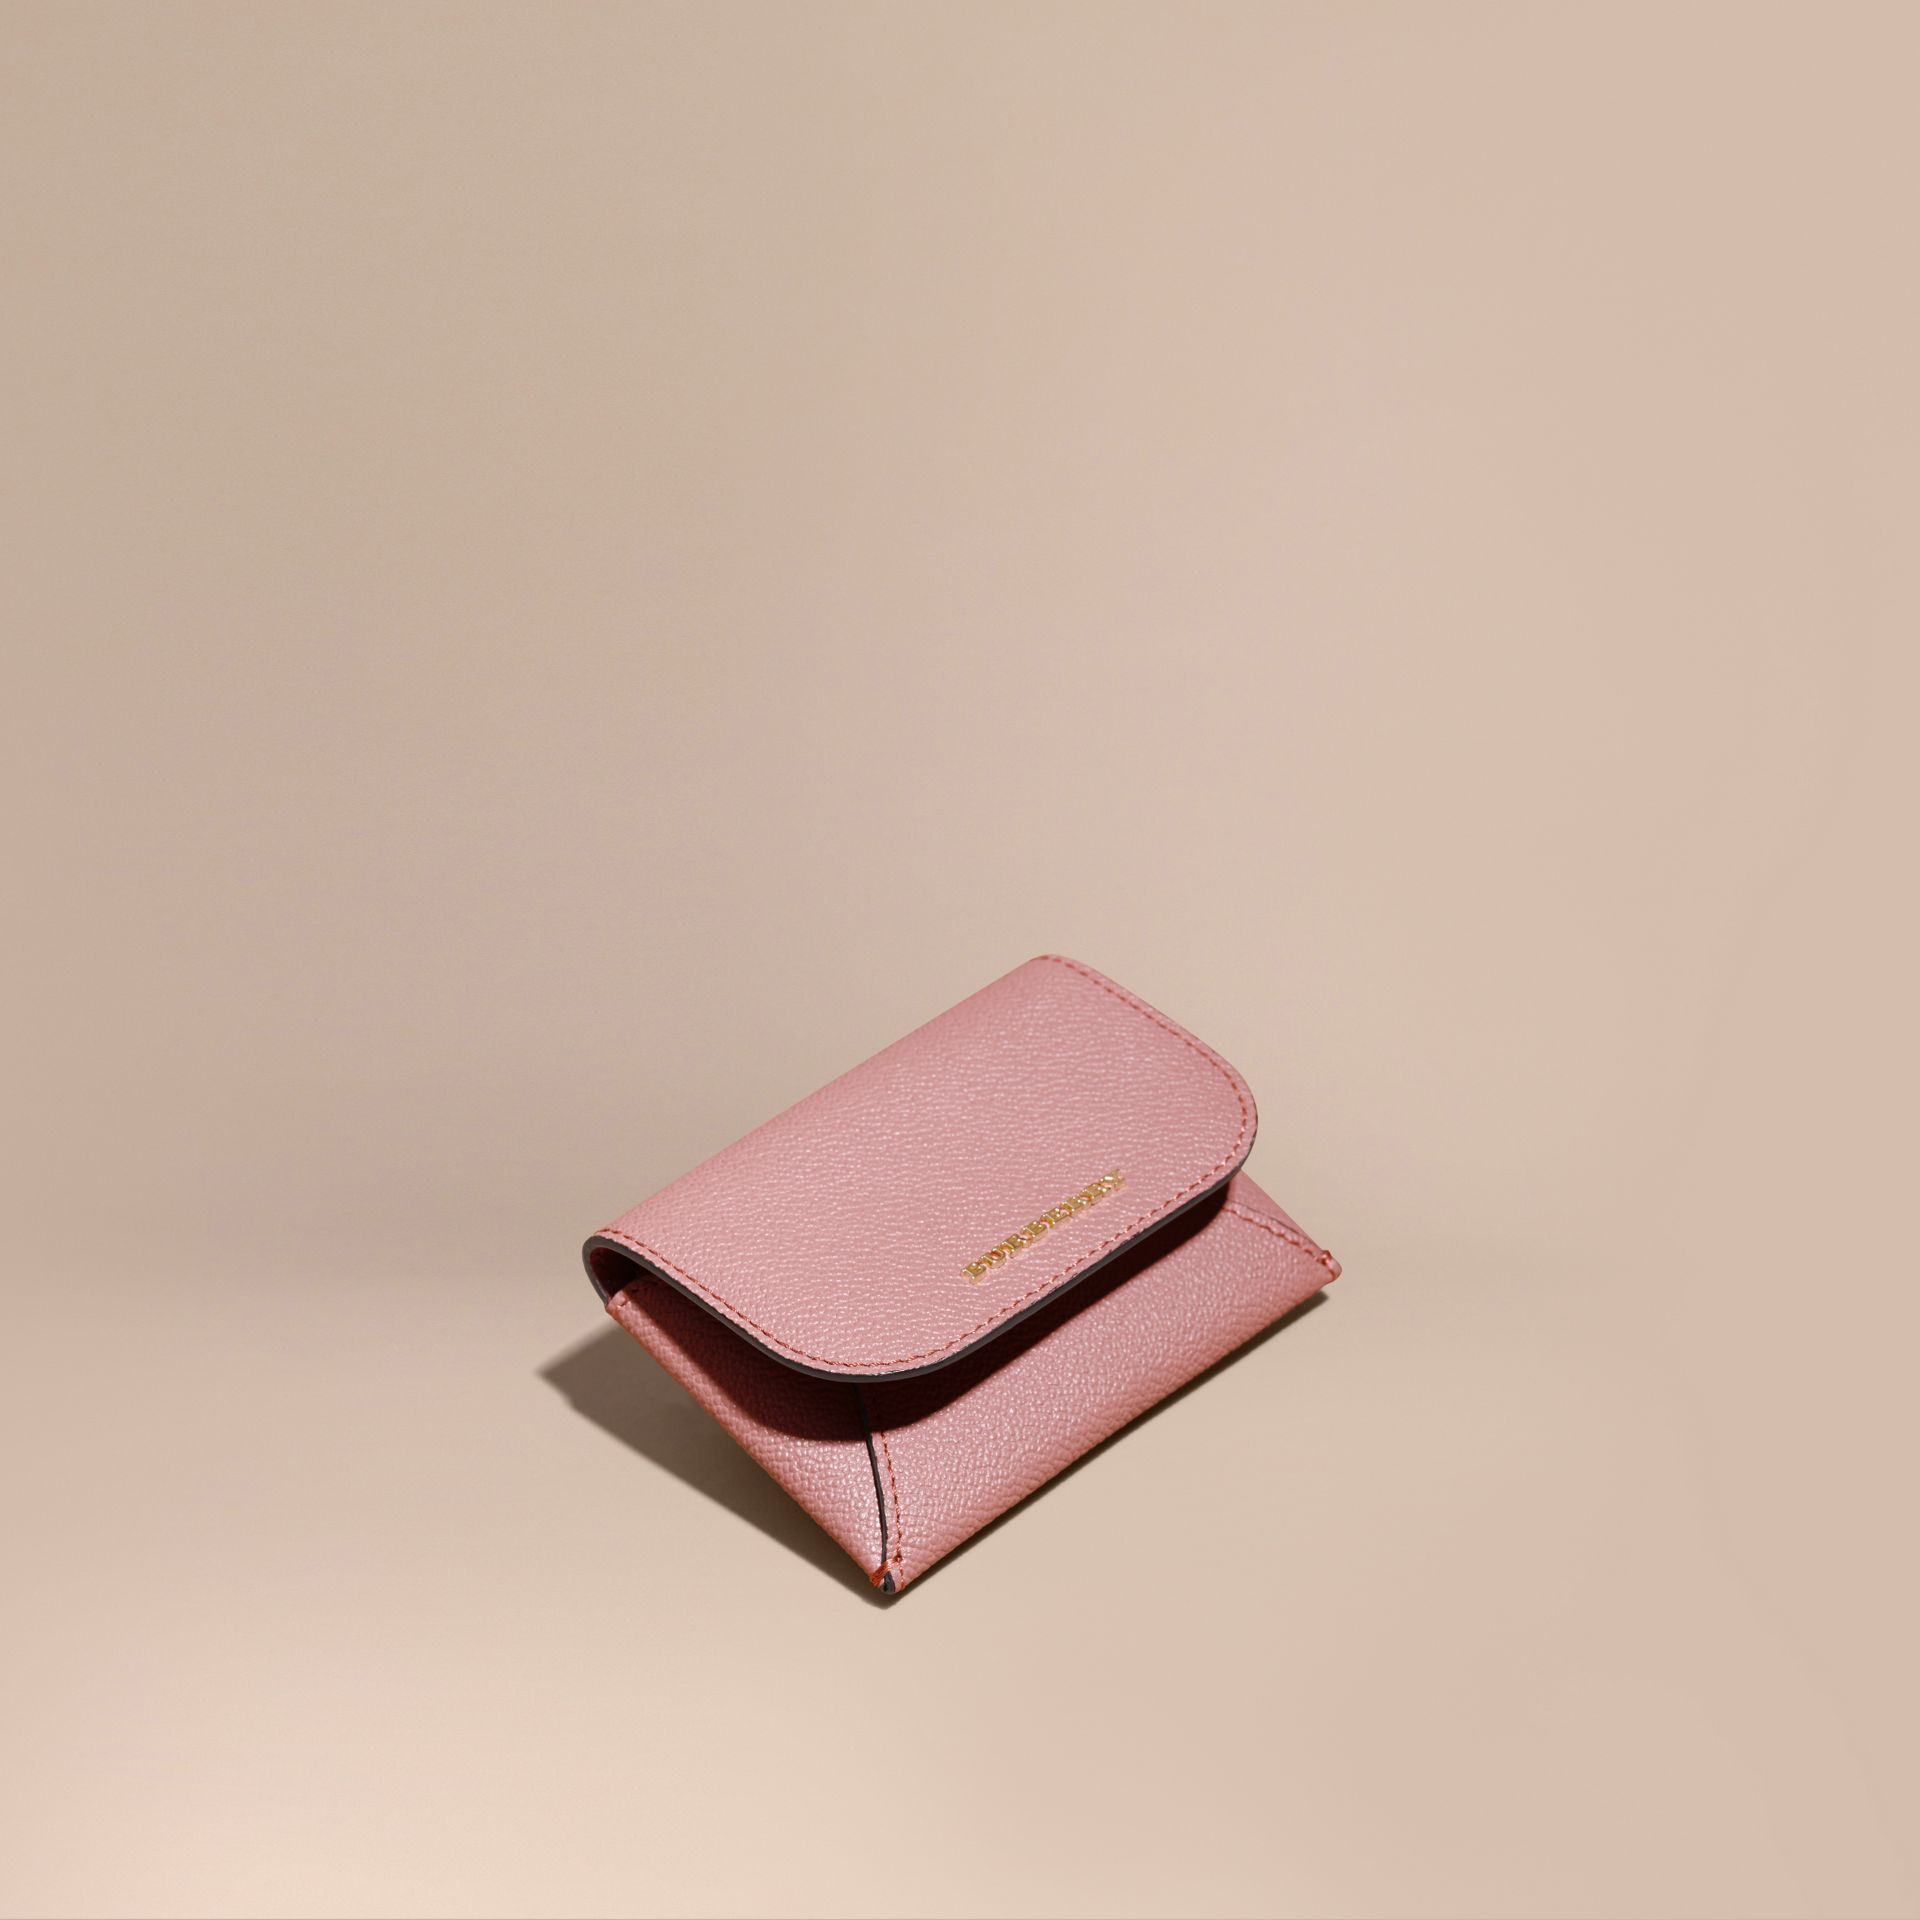 Leather Coin Case with Removable Card Compartment in Dusty Pink - Women | Burberry - gallery image 1